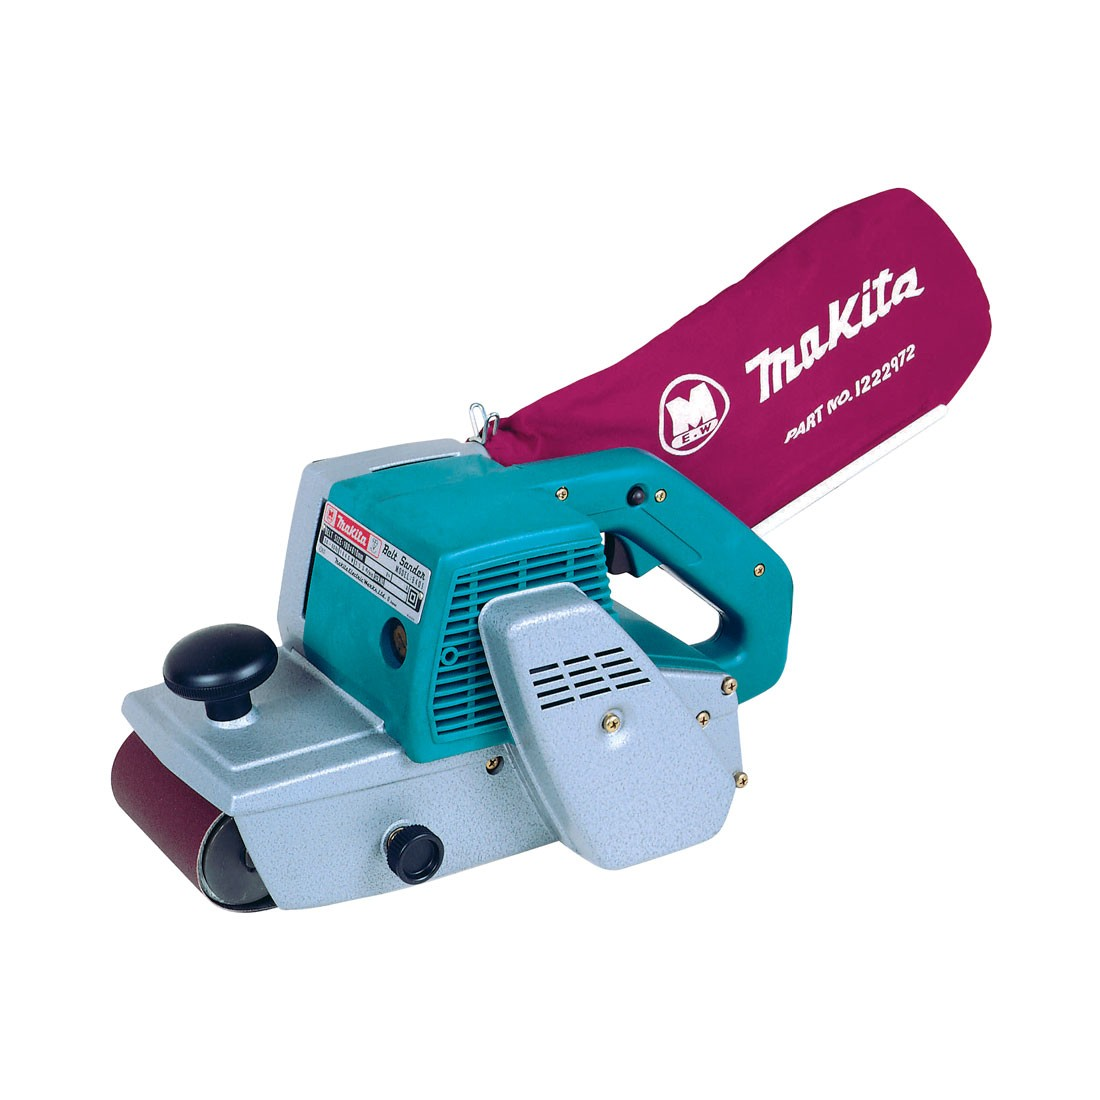 Makita 9401 Heavy Duty Belt Sander 1040W 110v